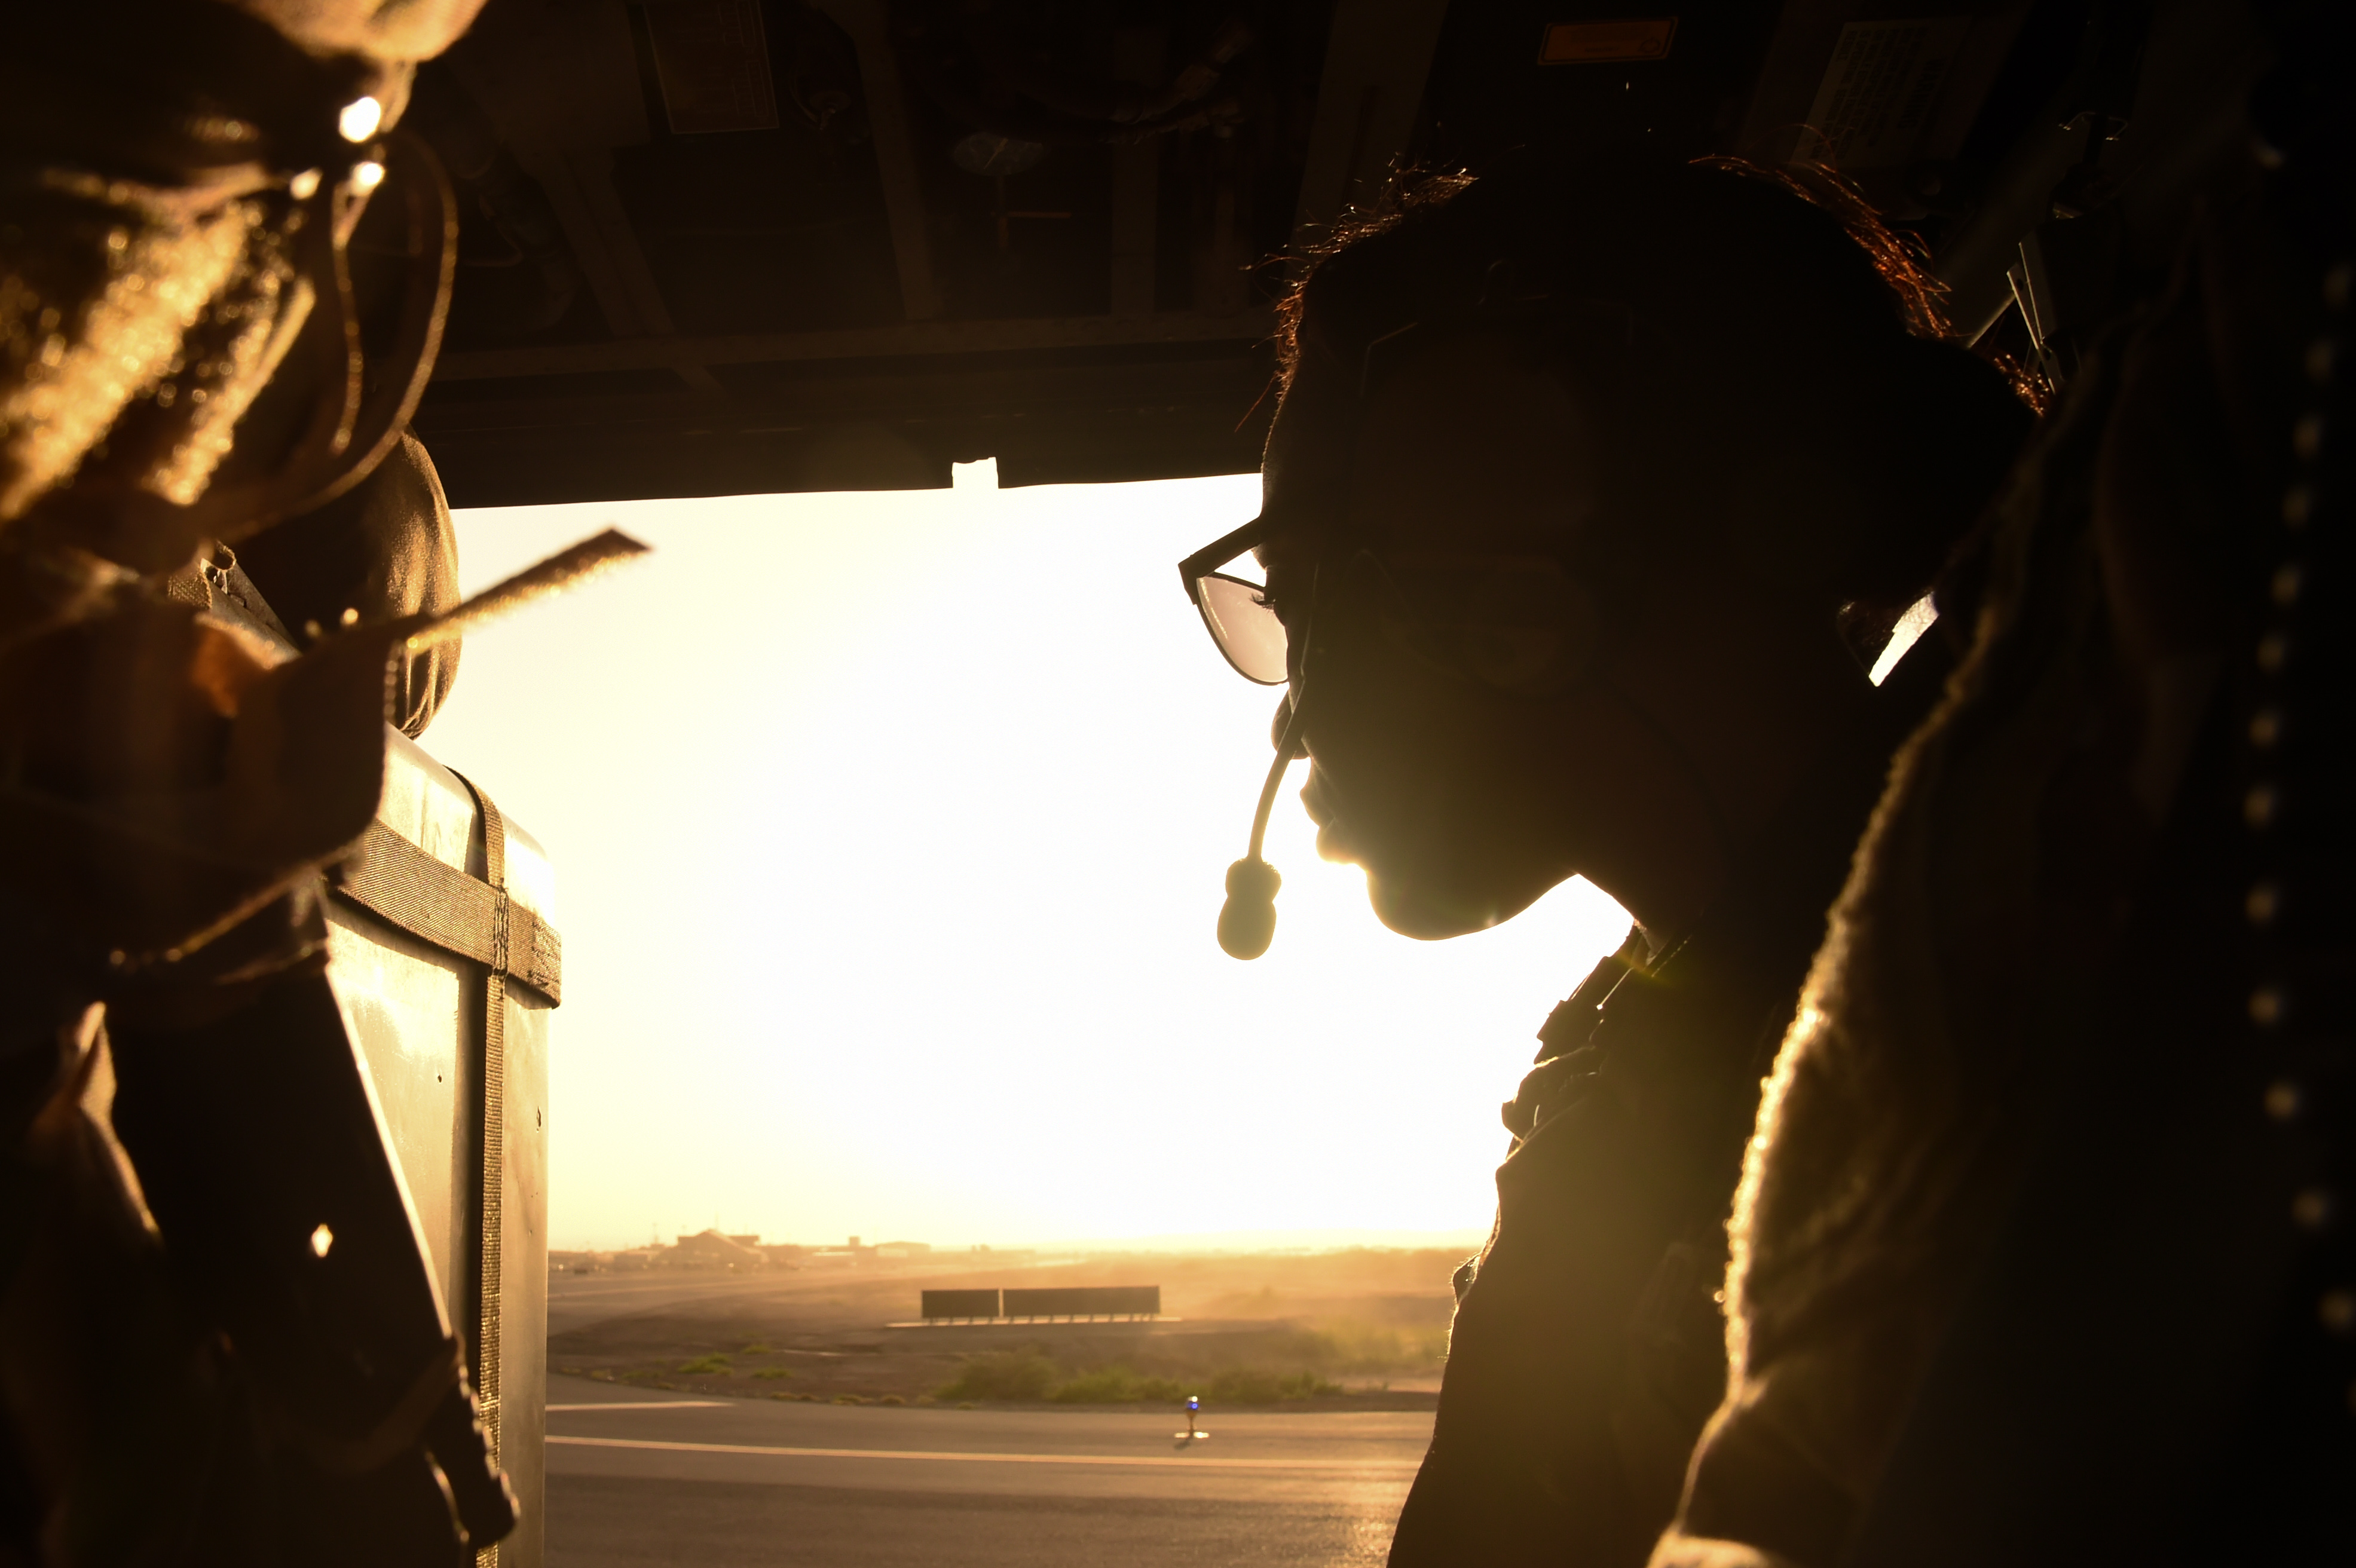 A U.S. Air Force member prepares for flight in an HH-60 during a visit to Camp Lemonnier, Djibouti, April 11, 2017. The General visited CJTF-HOA and its tenant commands with Chief Master Sgt. of the Air Force Kaleth Wright to gain a better understanding of Air Force integration and missions in the U.S. Africa Command area of responsibility. (U.S. Air National Guard photo by Staff Sgt. Penny Snoozy)